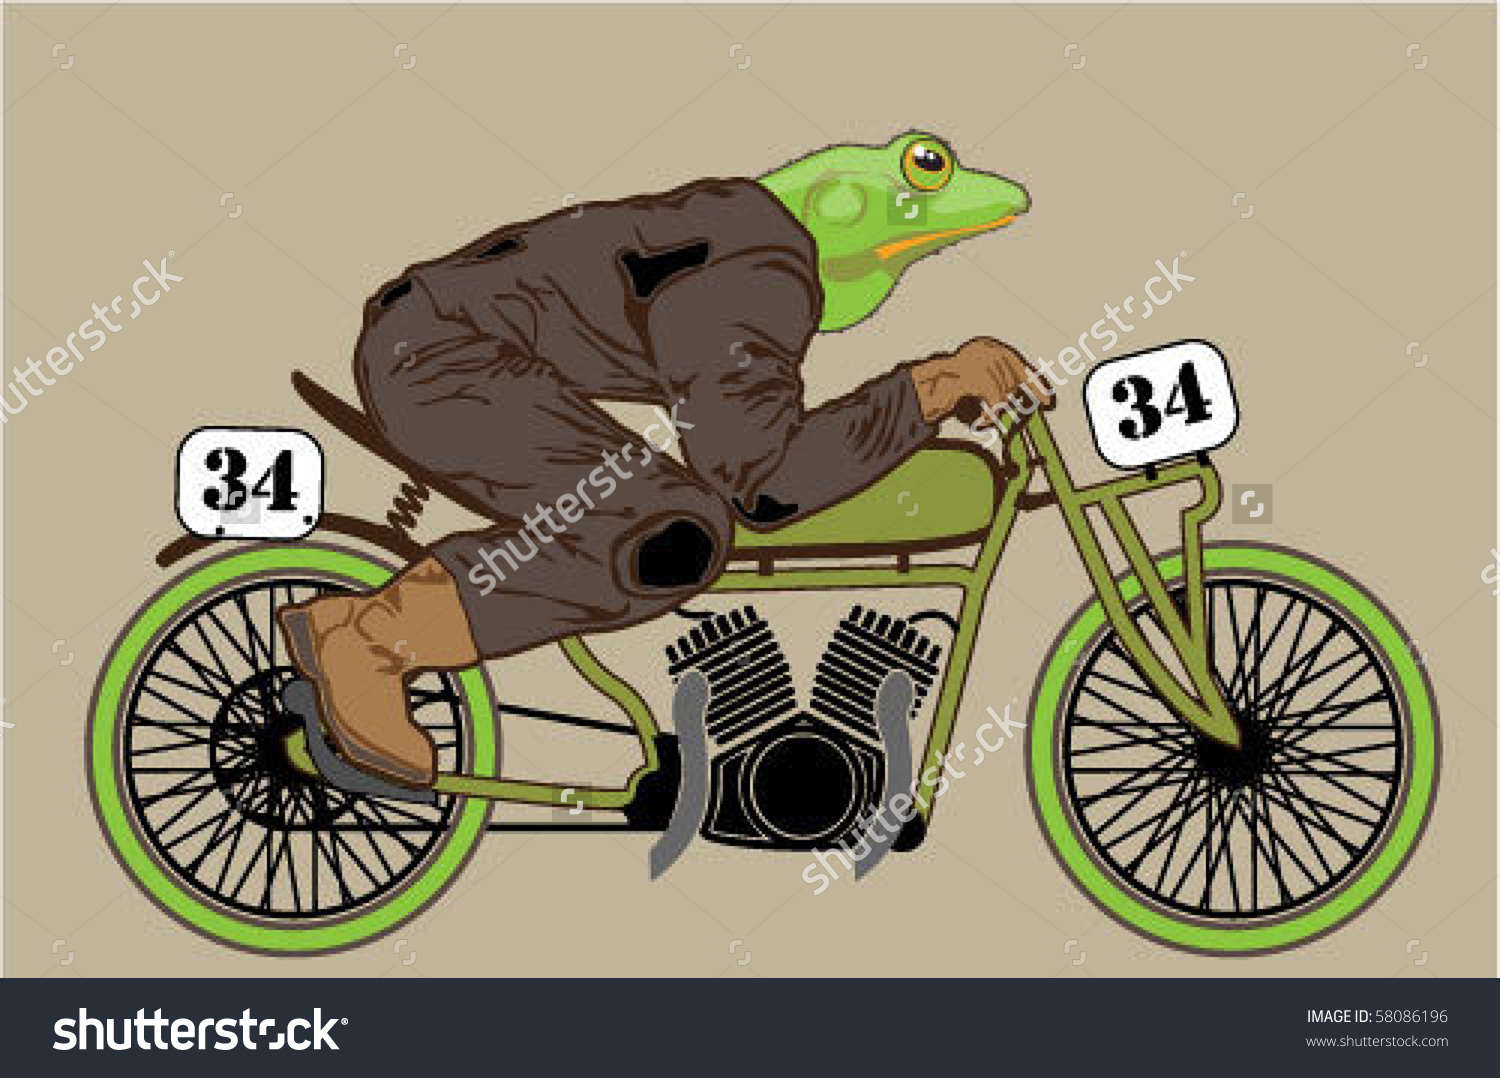 Crazy Frog Froganoid Riding Vintage Motorcycle Stock Vector.